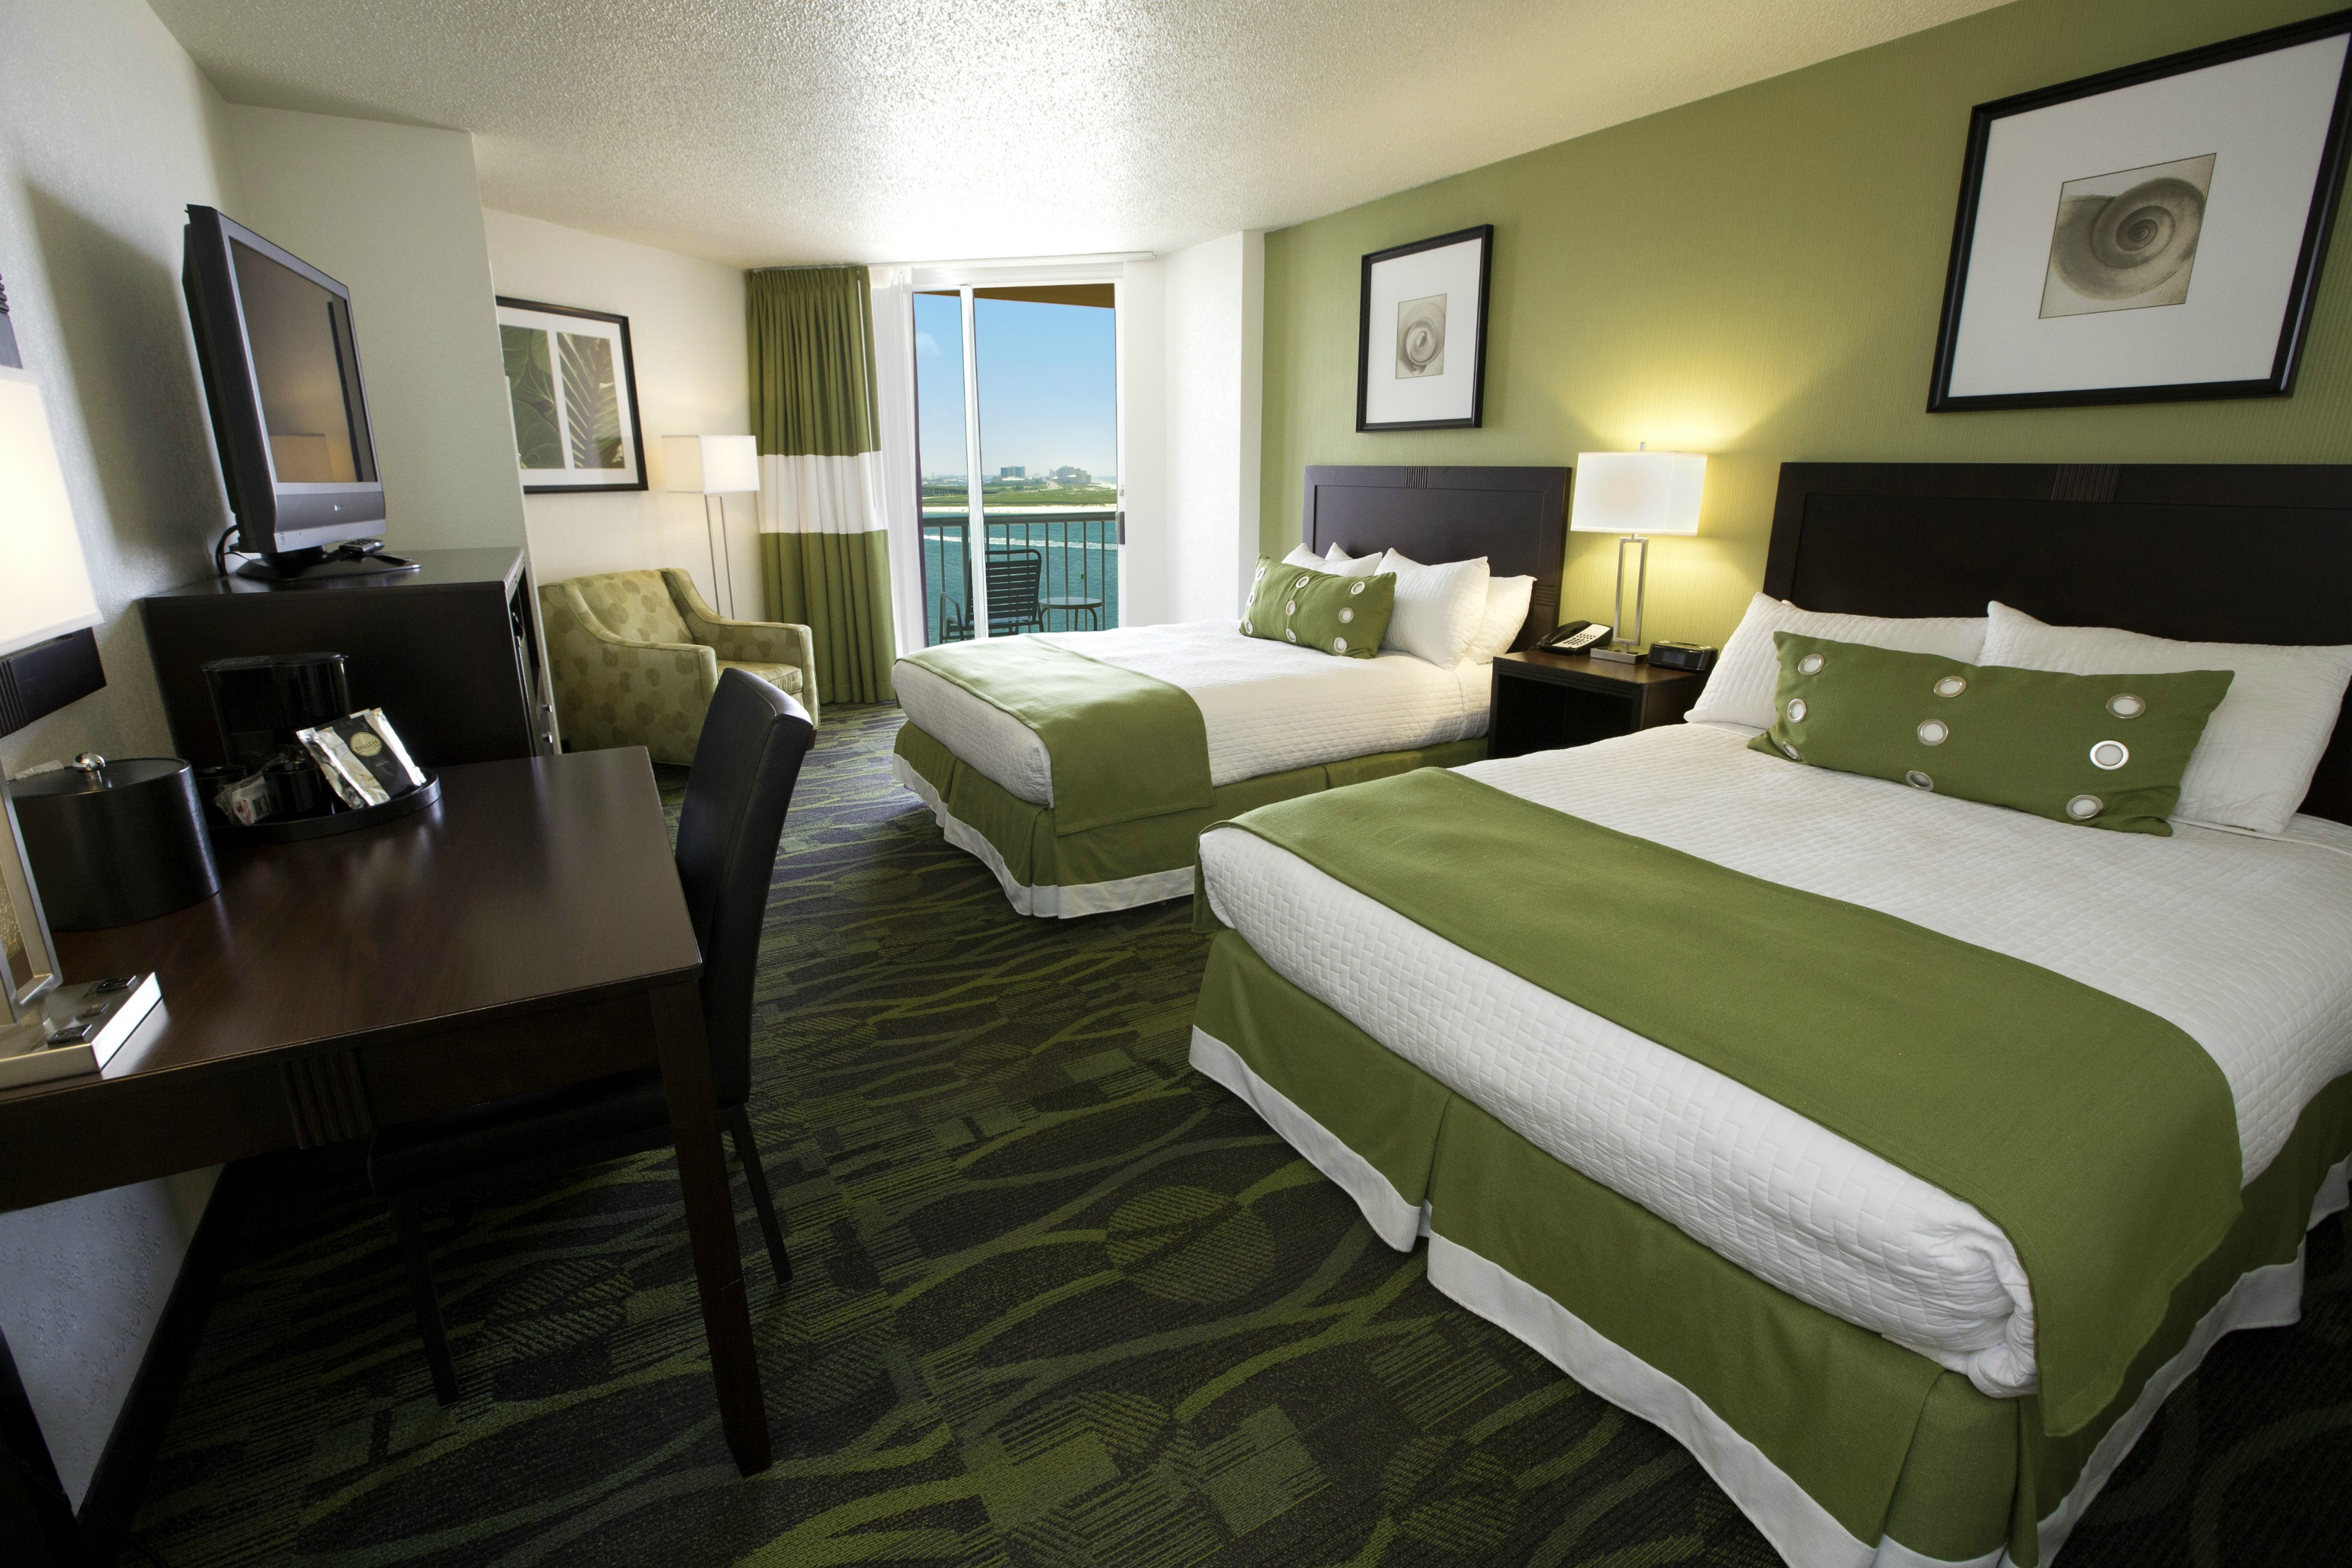 Perdido Beach Pass View Room featuring two Queen beds